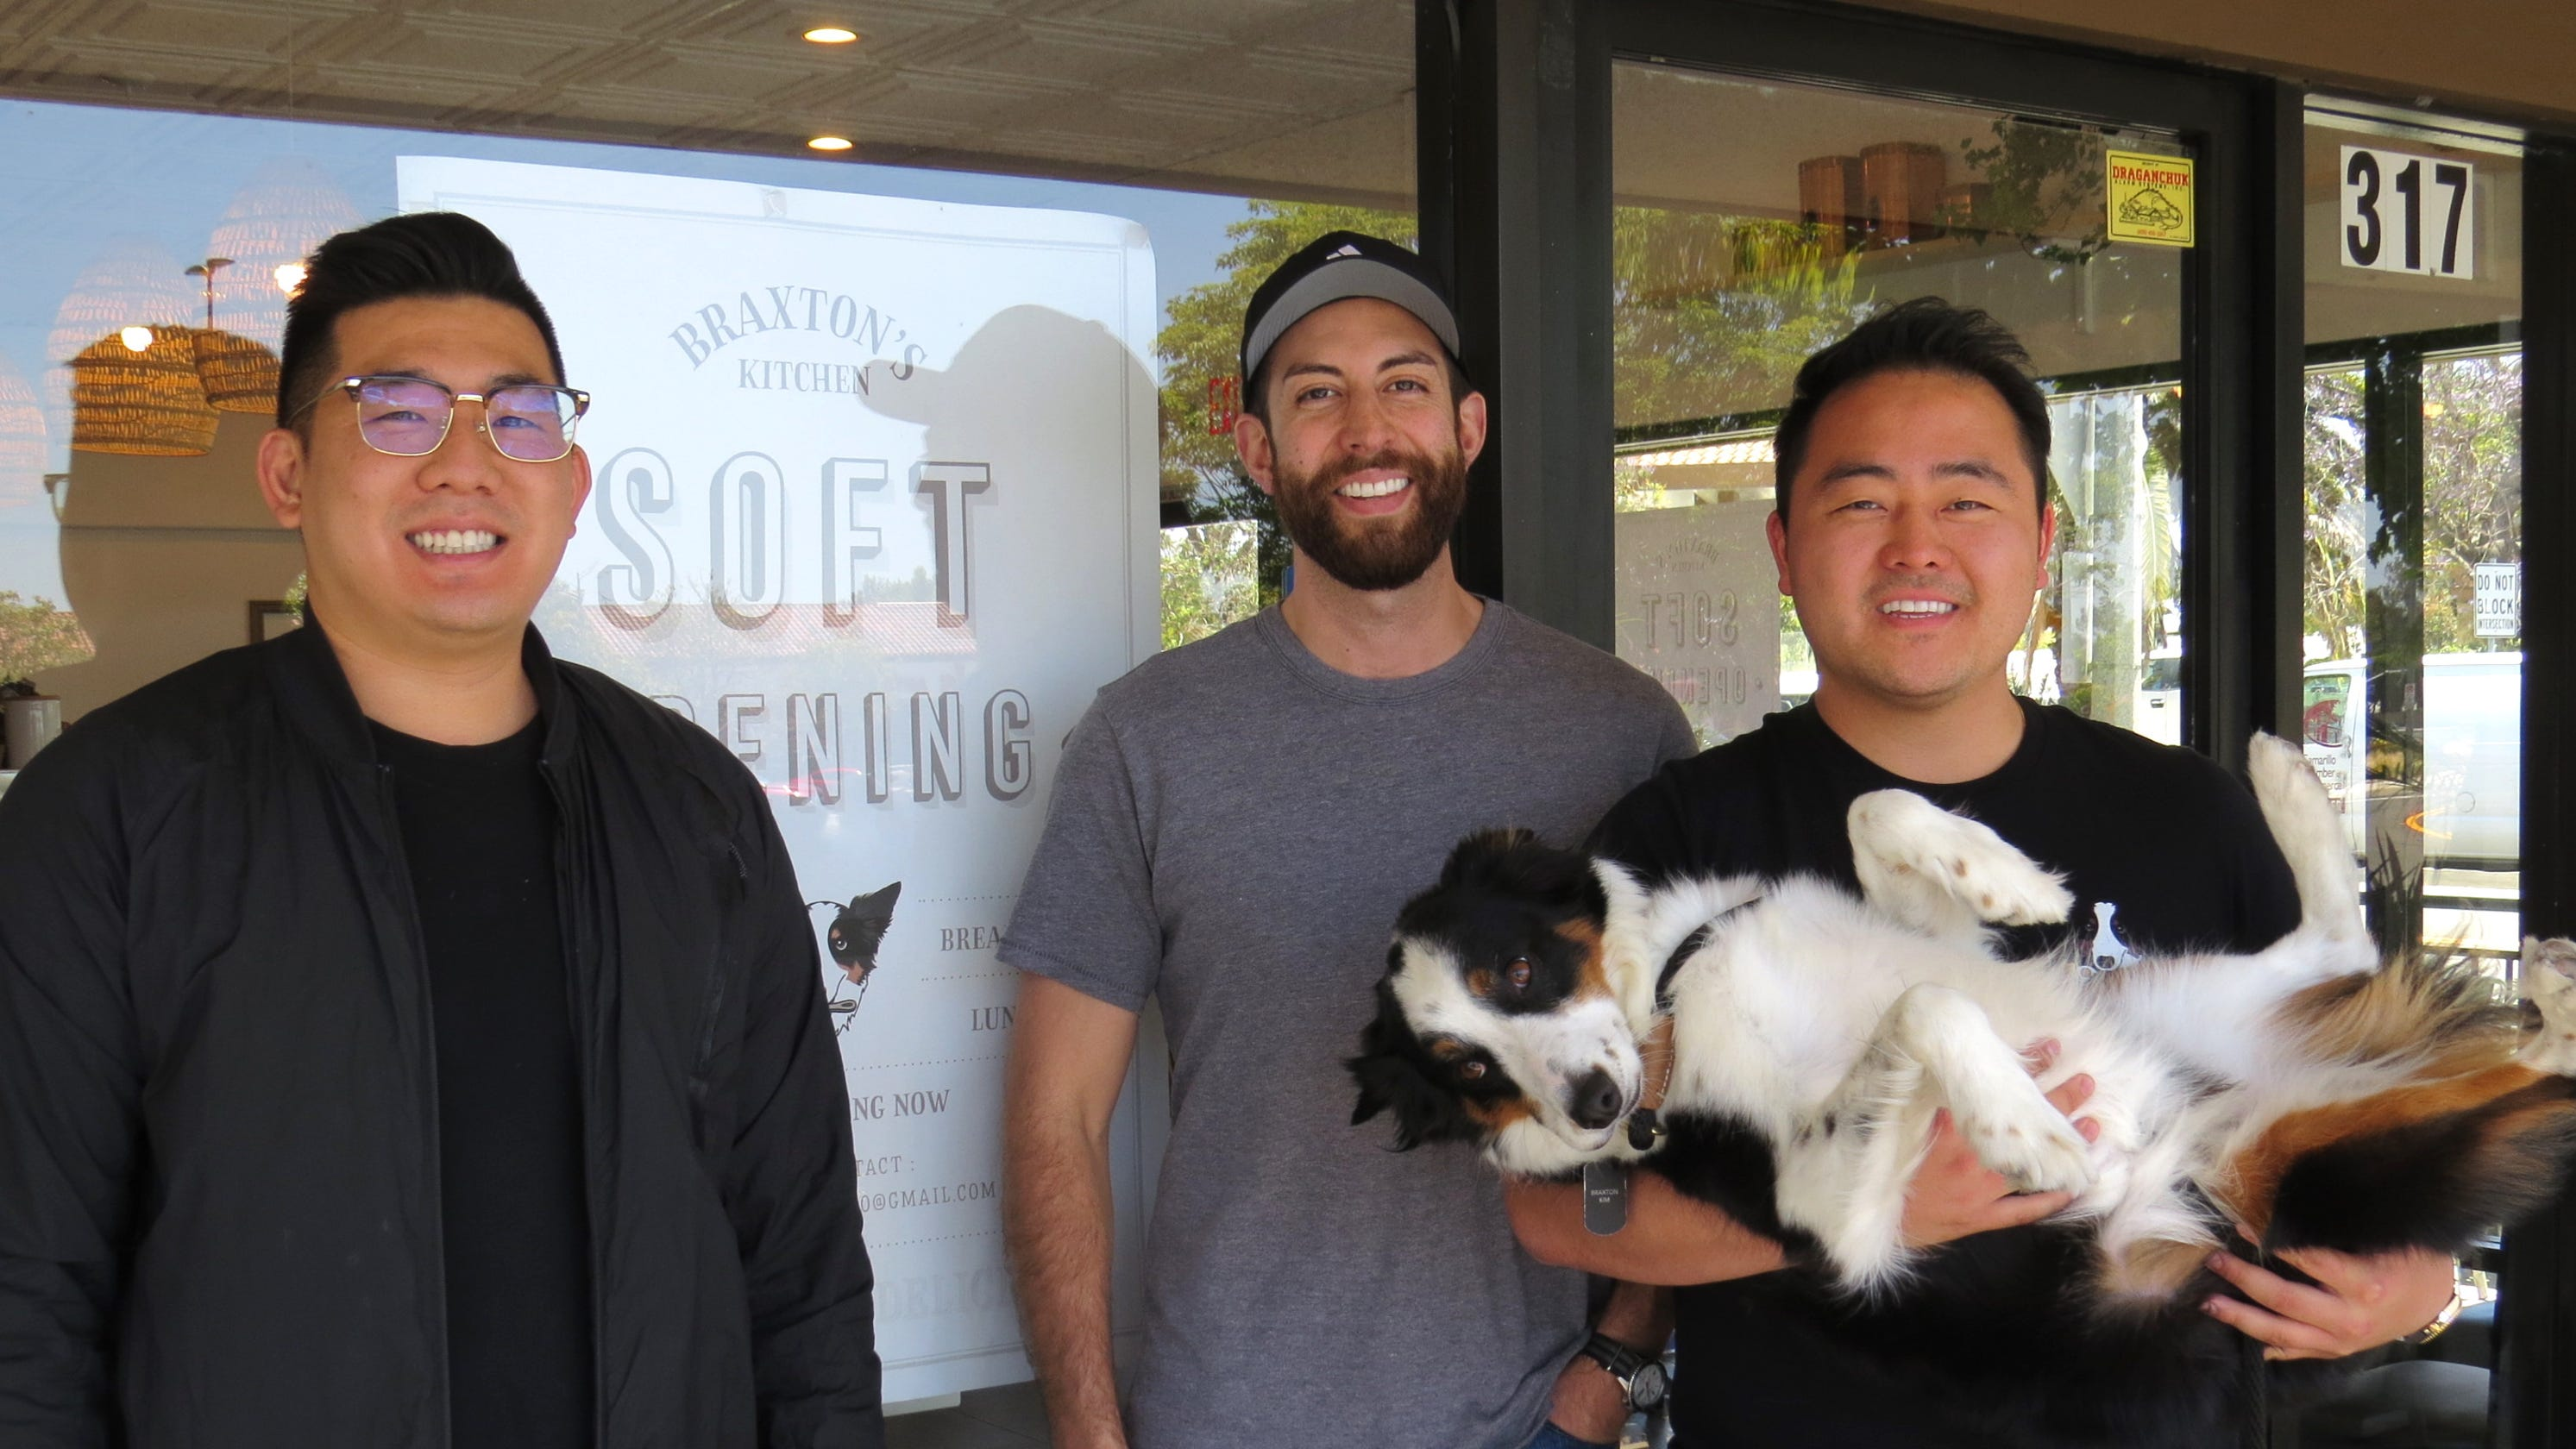 Braxton's Kitchen welcomes dogs to eat with owners in Camarillo